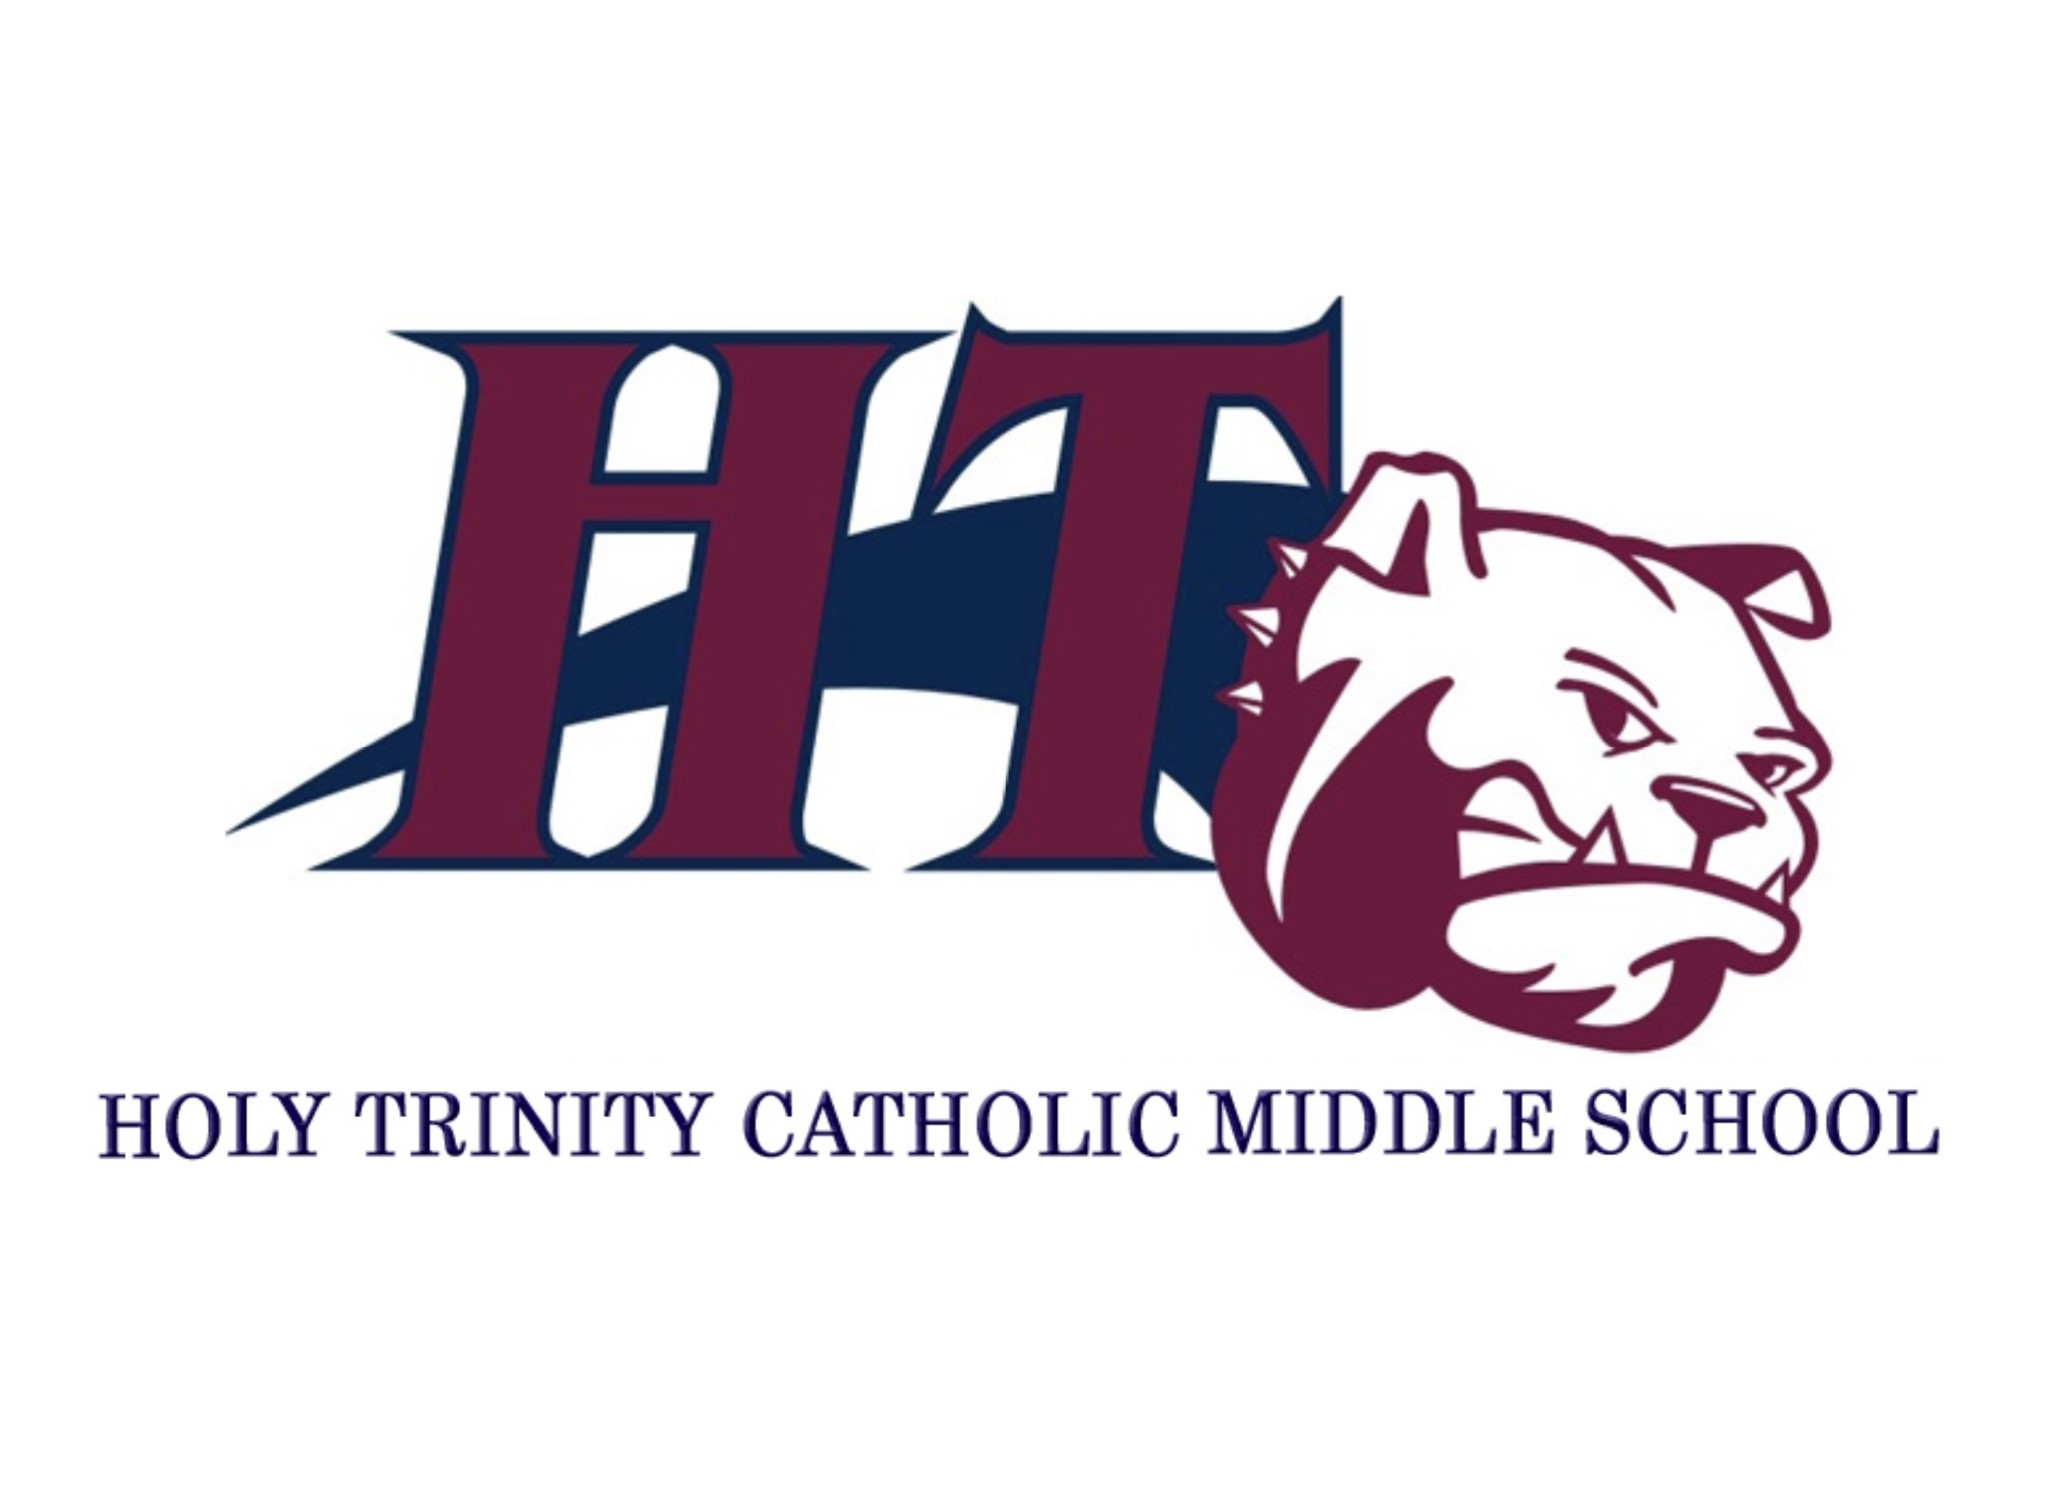 Holy Trinity Catholic Middle School